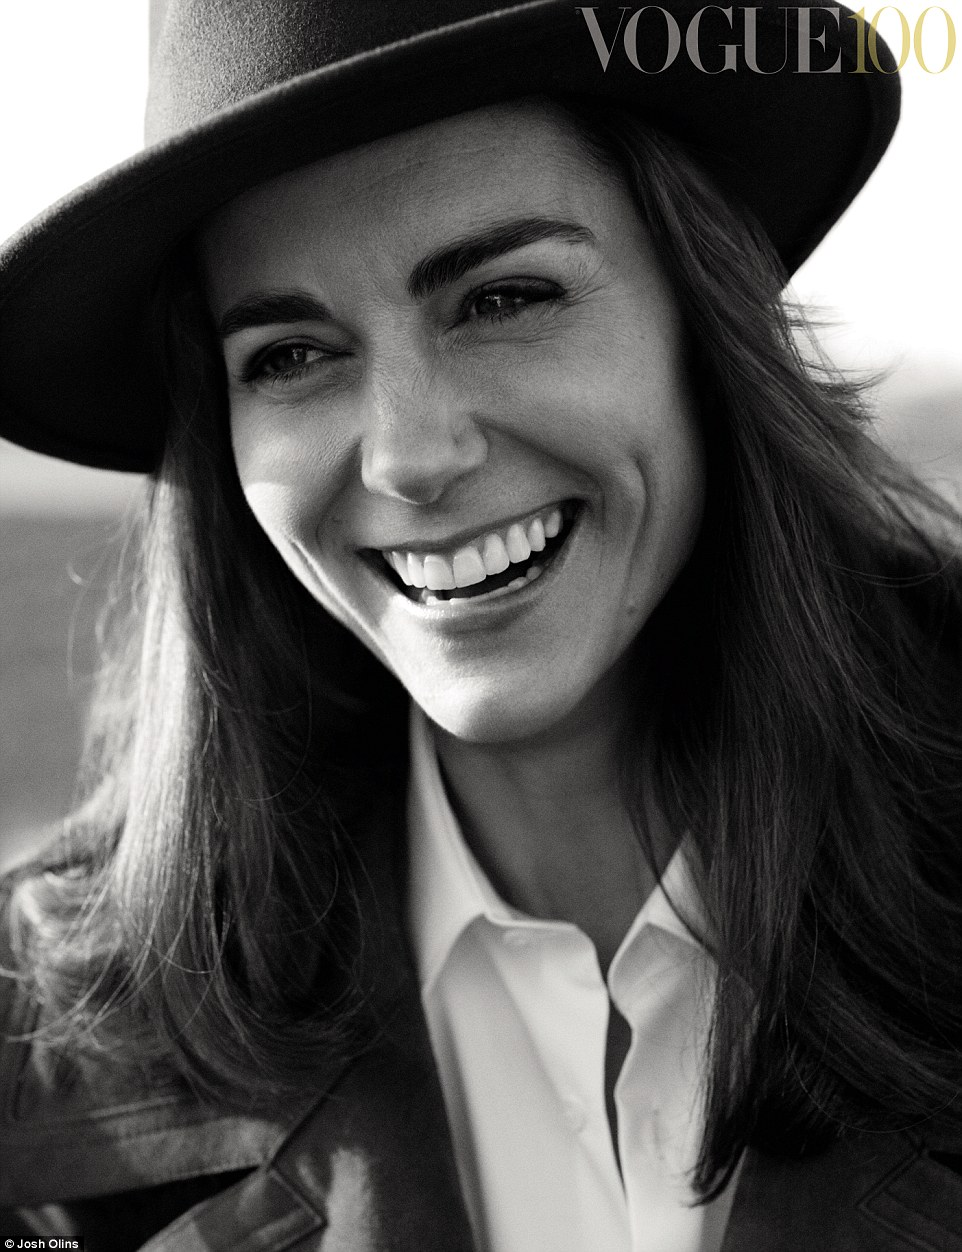 Kate Middleton is elegant for British Vogue's 100th Anniversary Issue